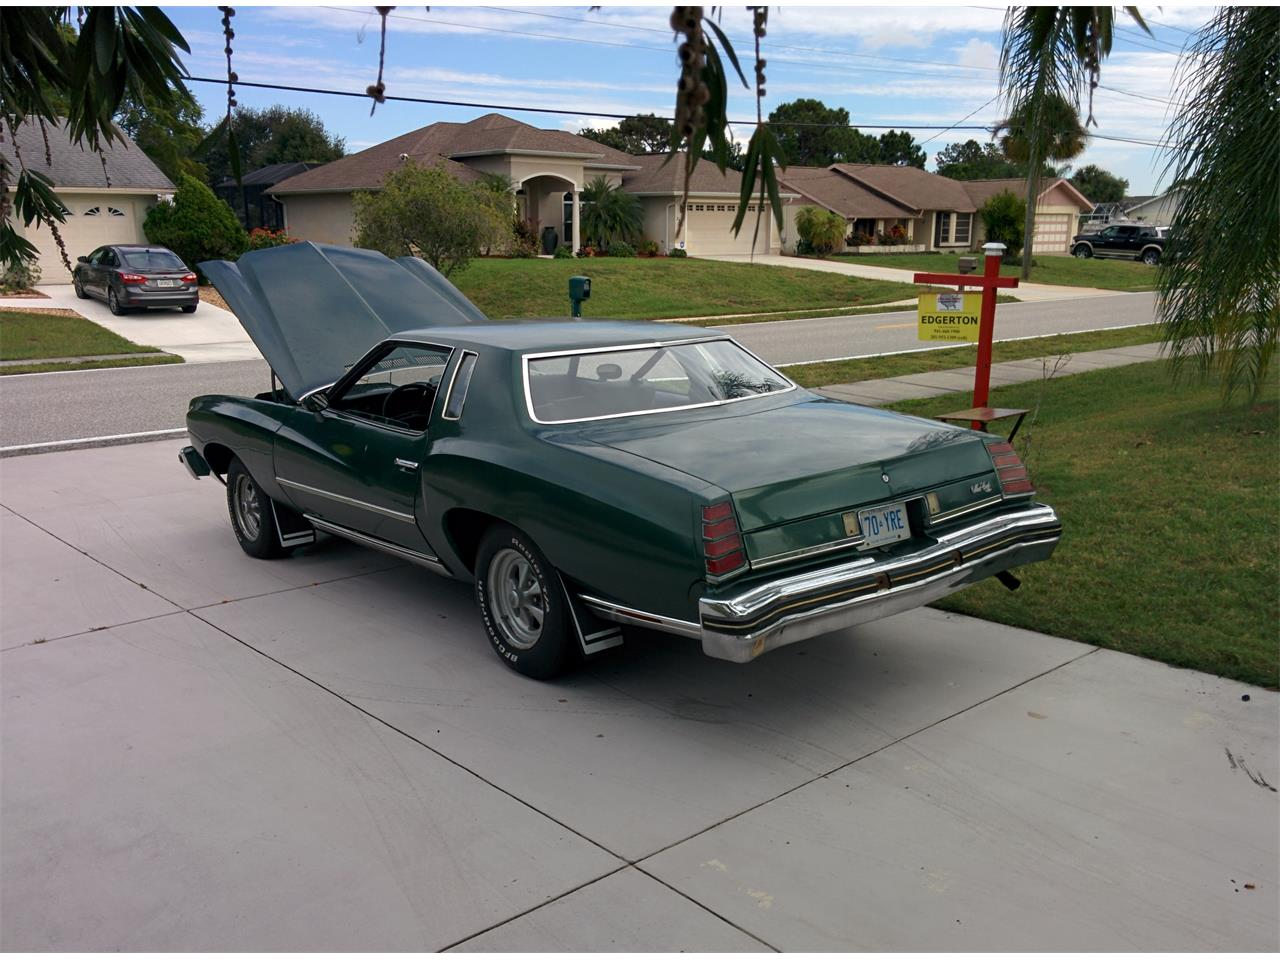 Large Picture of 1975 Chevrolet Monte Carlo Landau located in Kinsville Ontario Offered by a Private Seller - FTXT